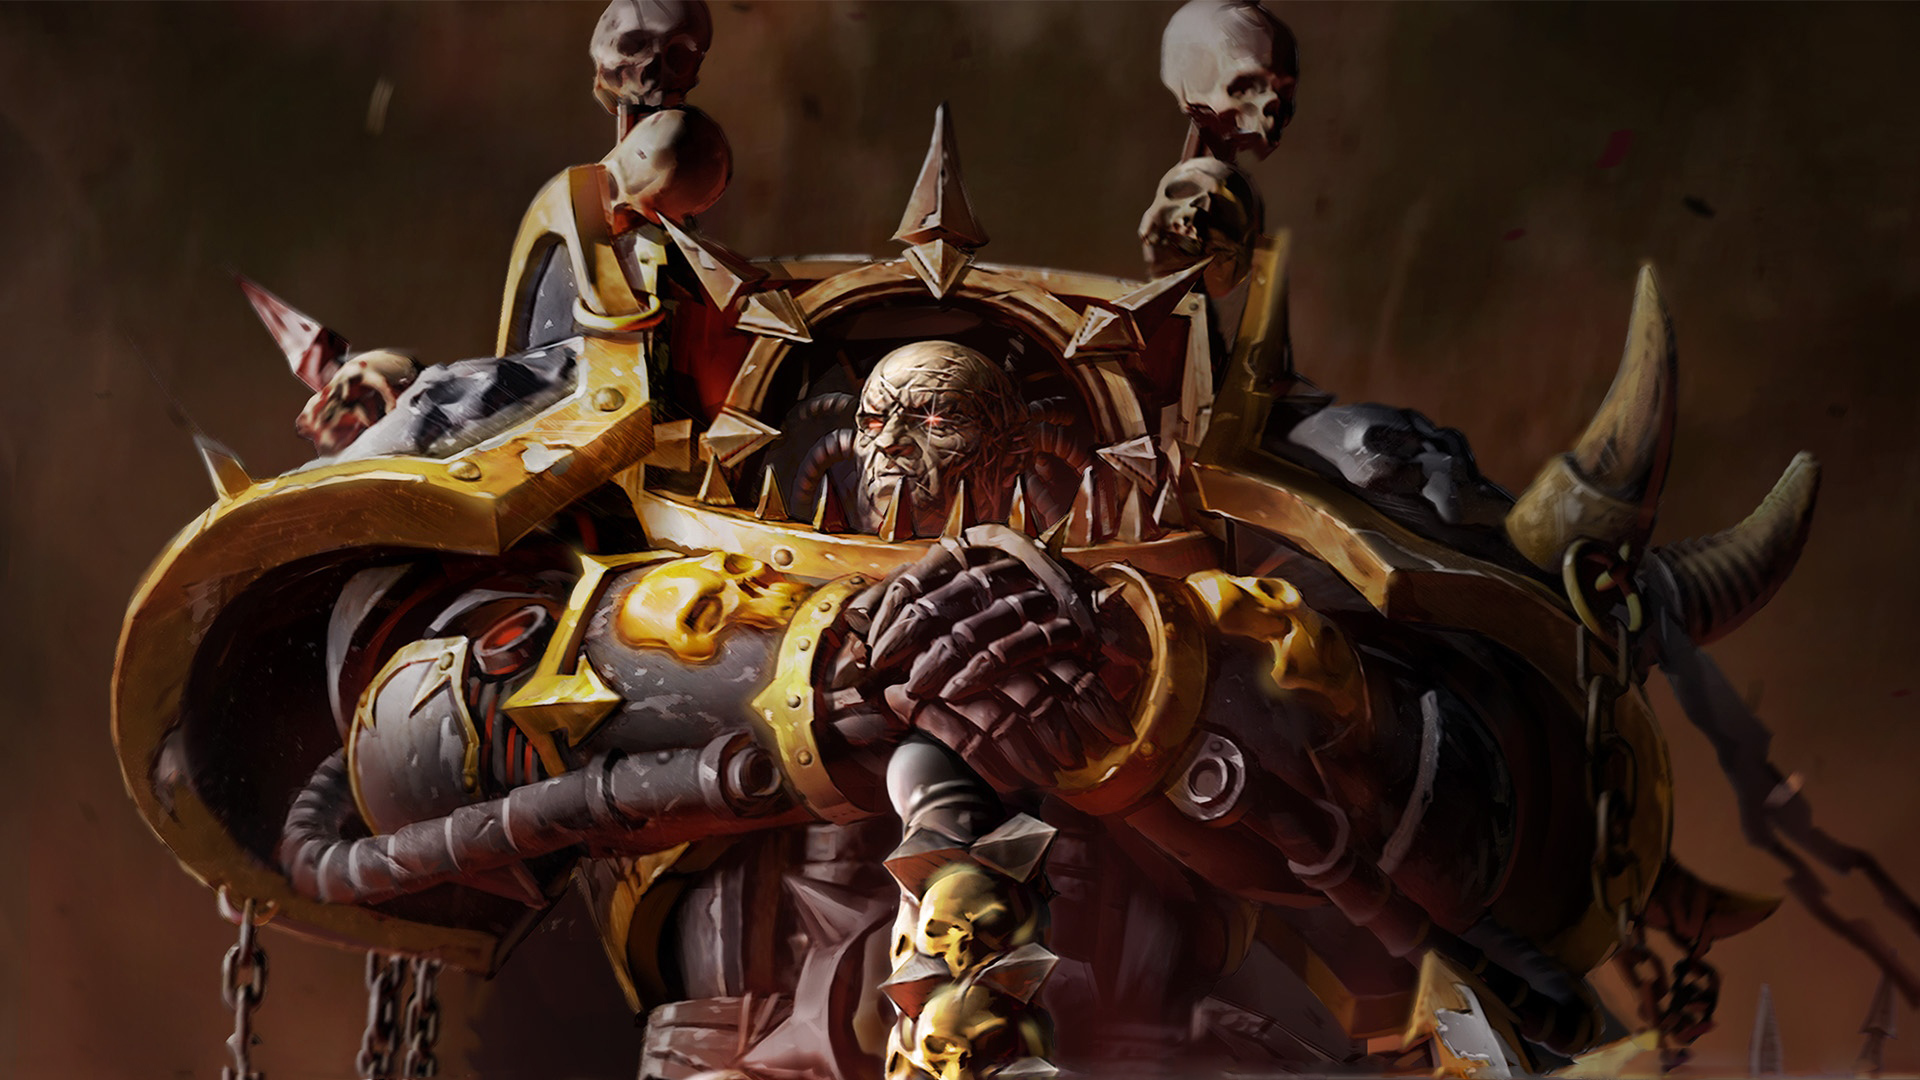 40K Wallpaper 1920x1080 Warhammer 40K Artwork Space Marine Chaos 1920x1080